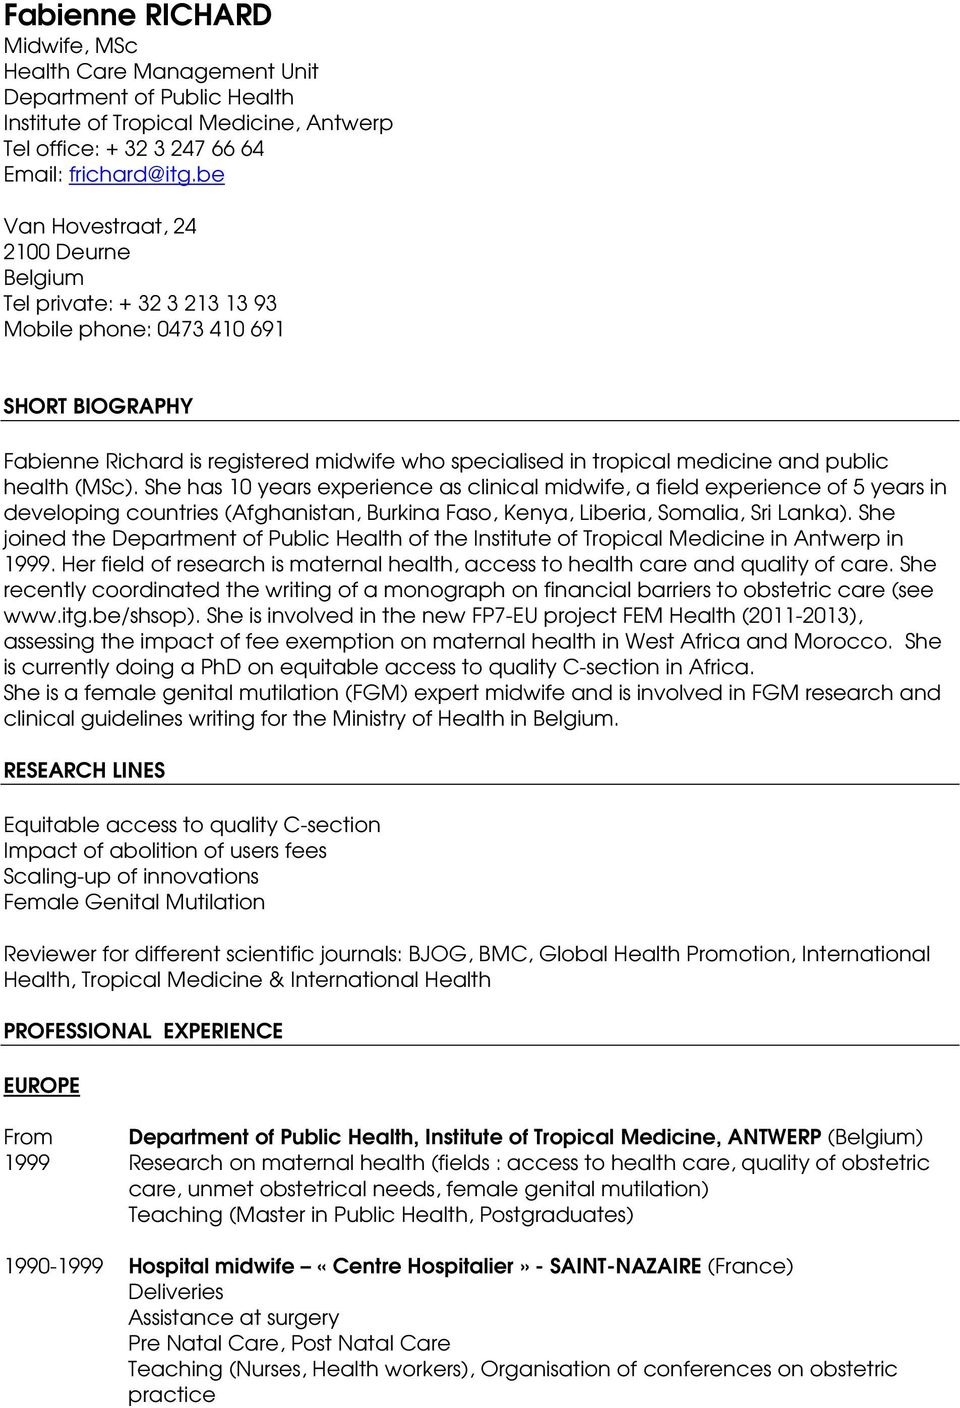 public health (MSc). She has 10 years experience as clinical midwife, a field experience of 5 years in developing countries (Afghanistan, Burkina Faso, Kenya, Liberia, Somalia, Sri Lanka).